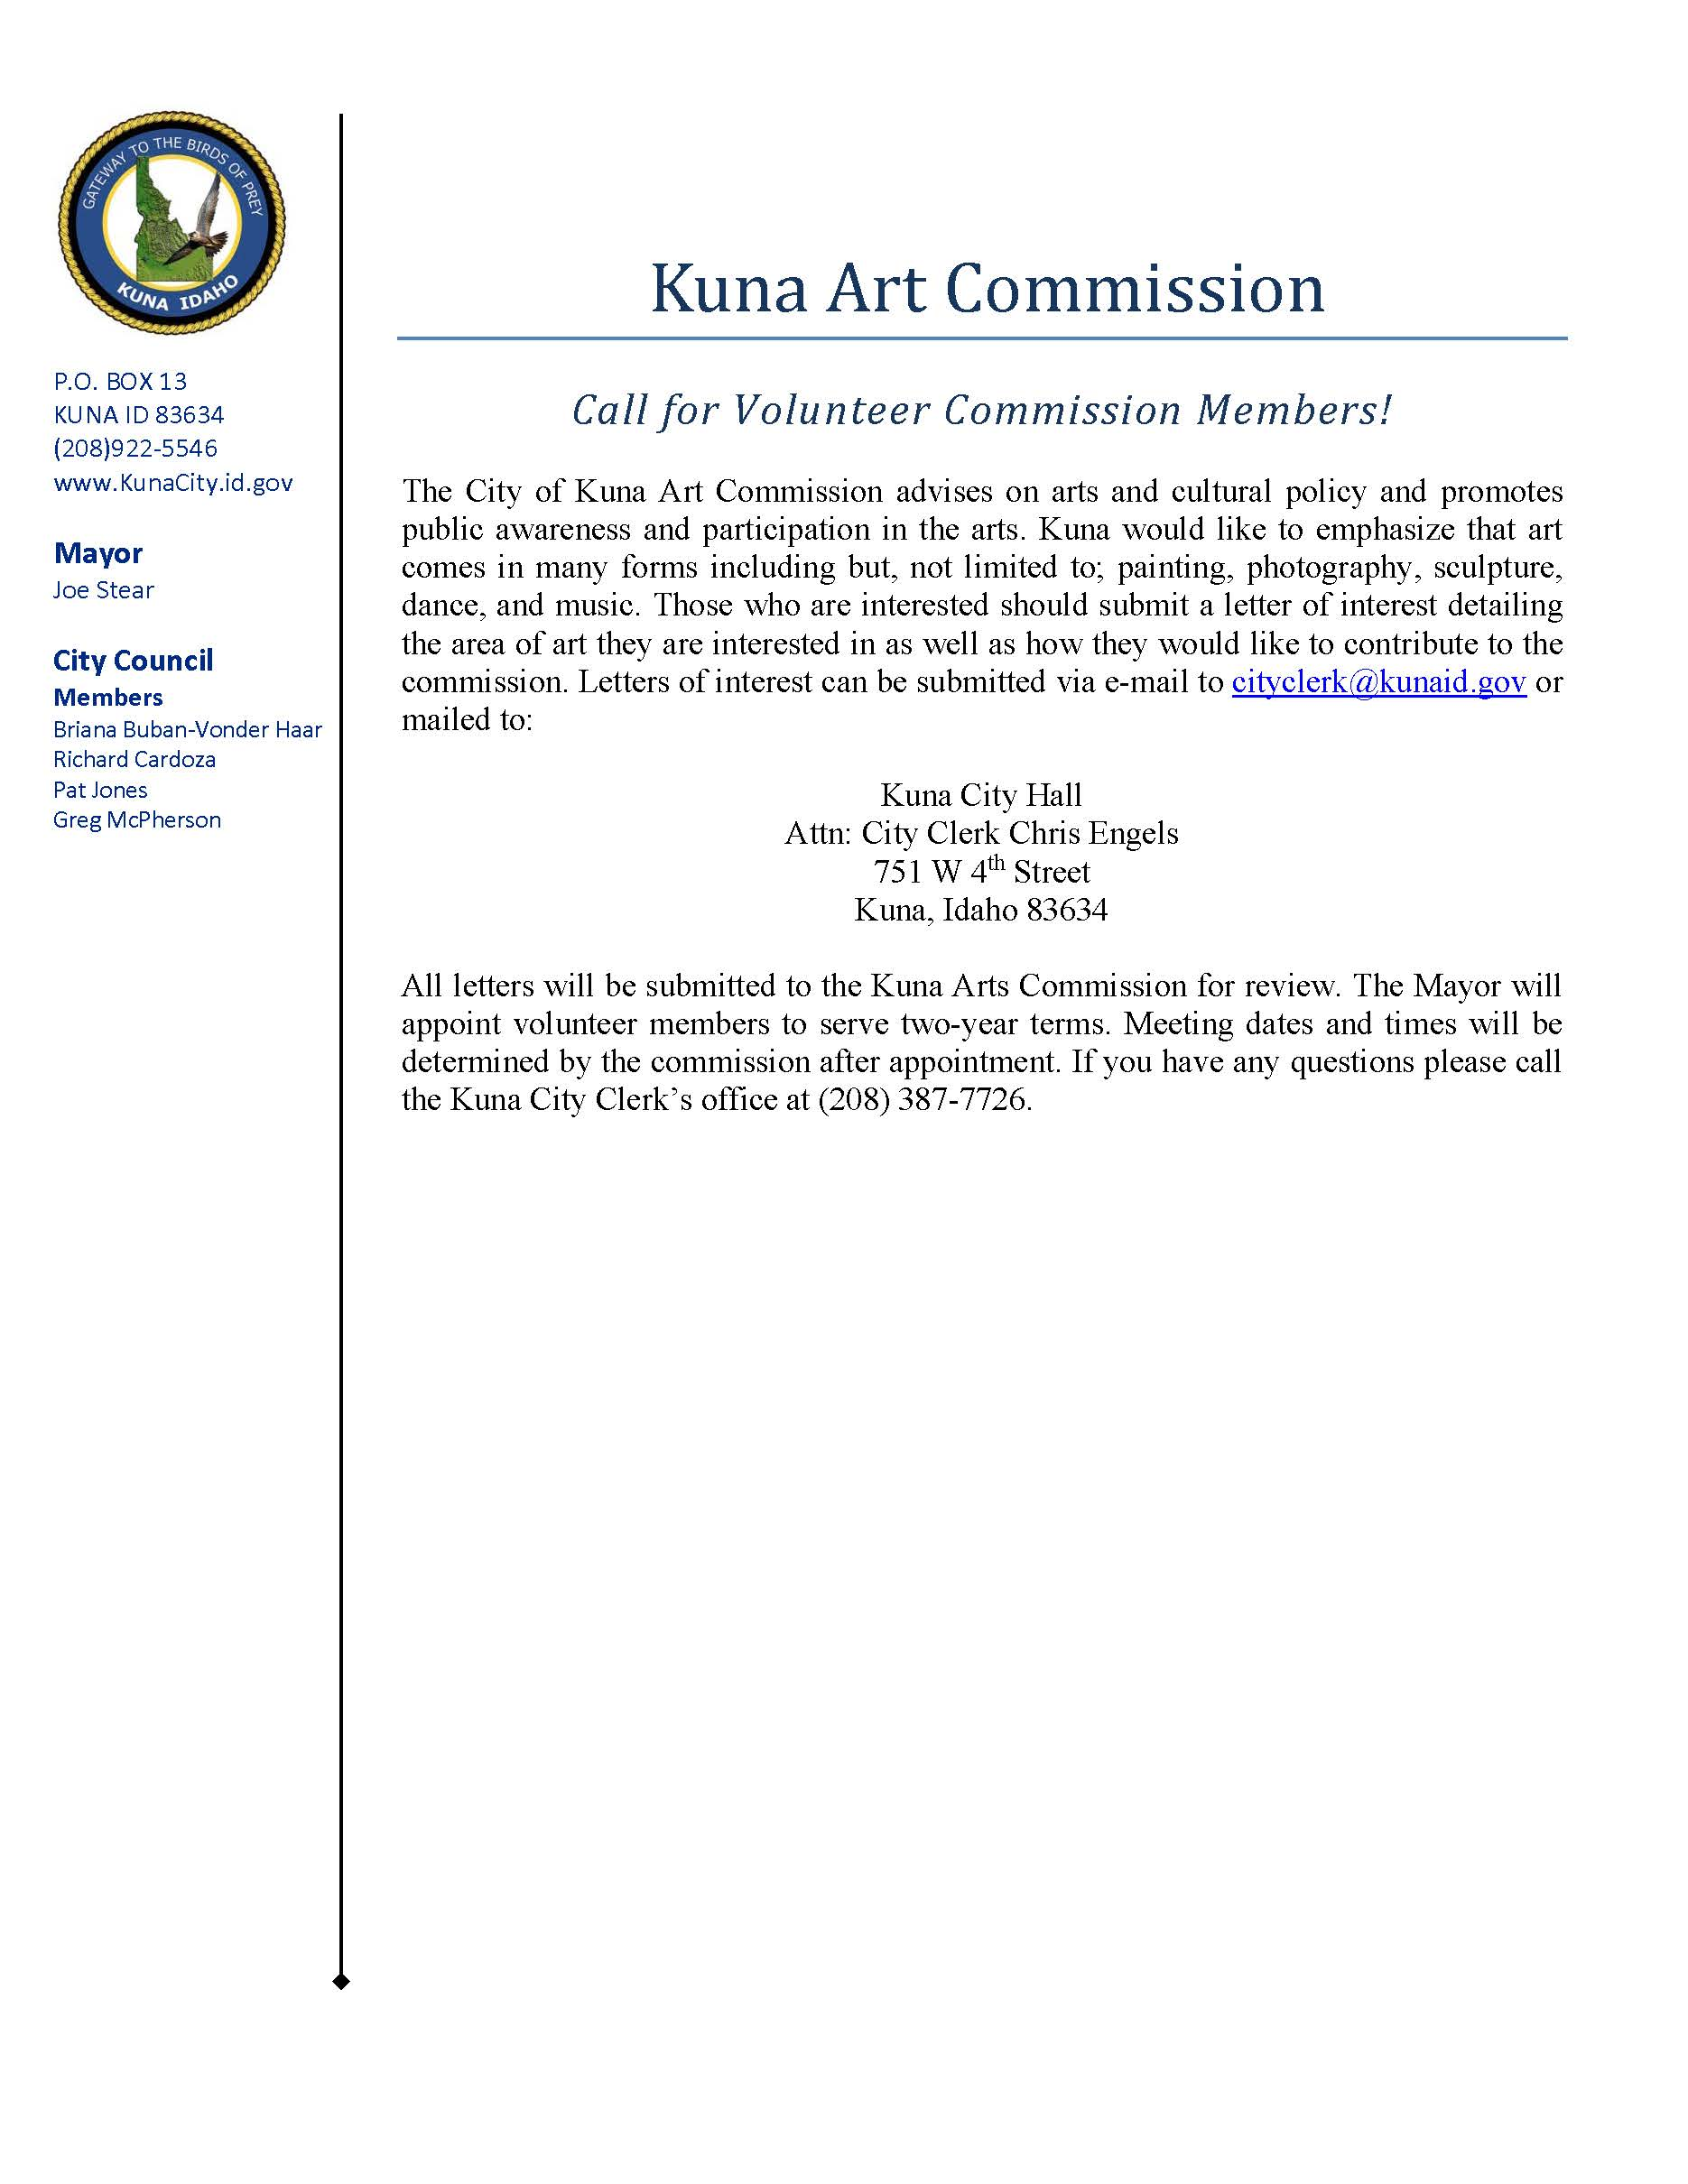 Arts Commission Call for Members (JPEG)